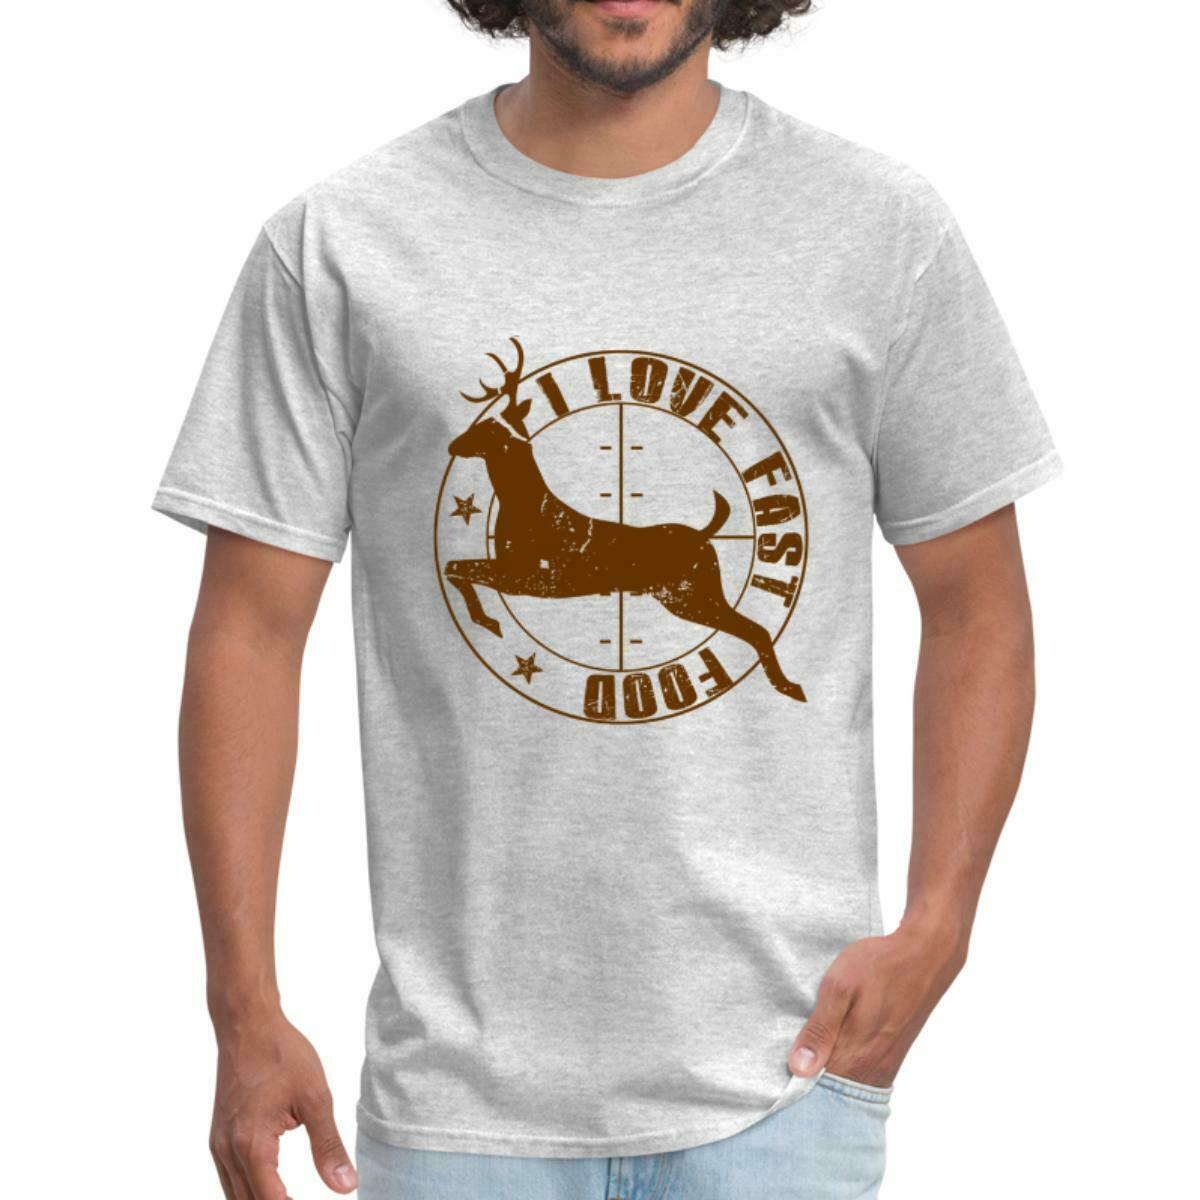 Funny Hunting Quotes Humor Deer Fast Food Men S T Shirt Xetsy